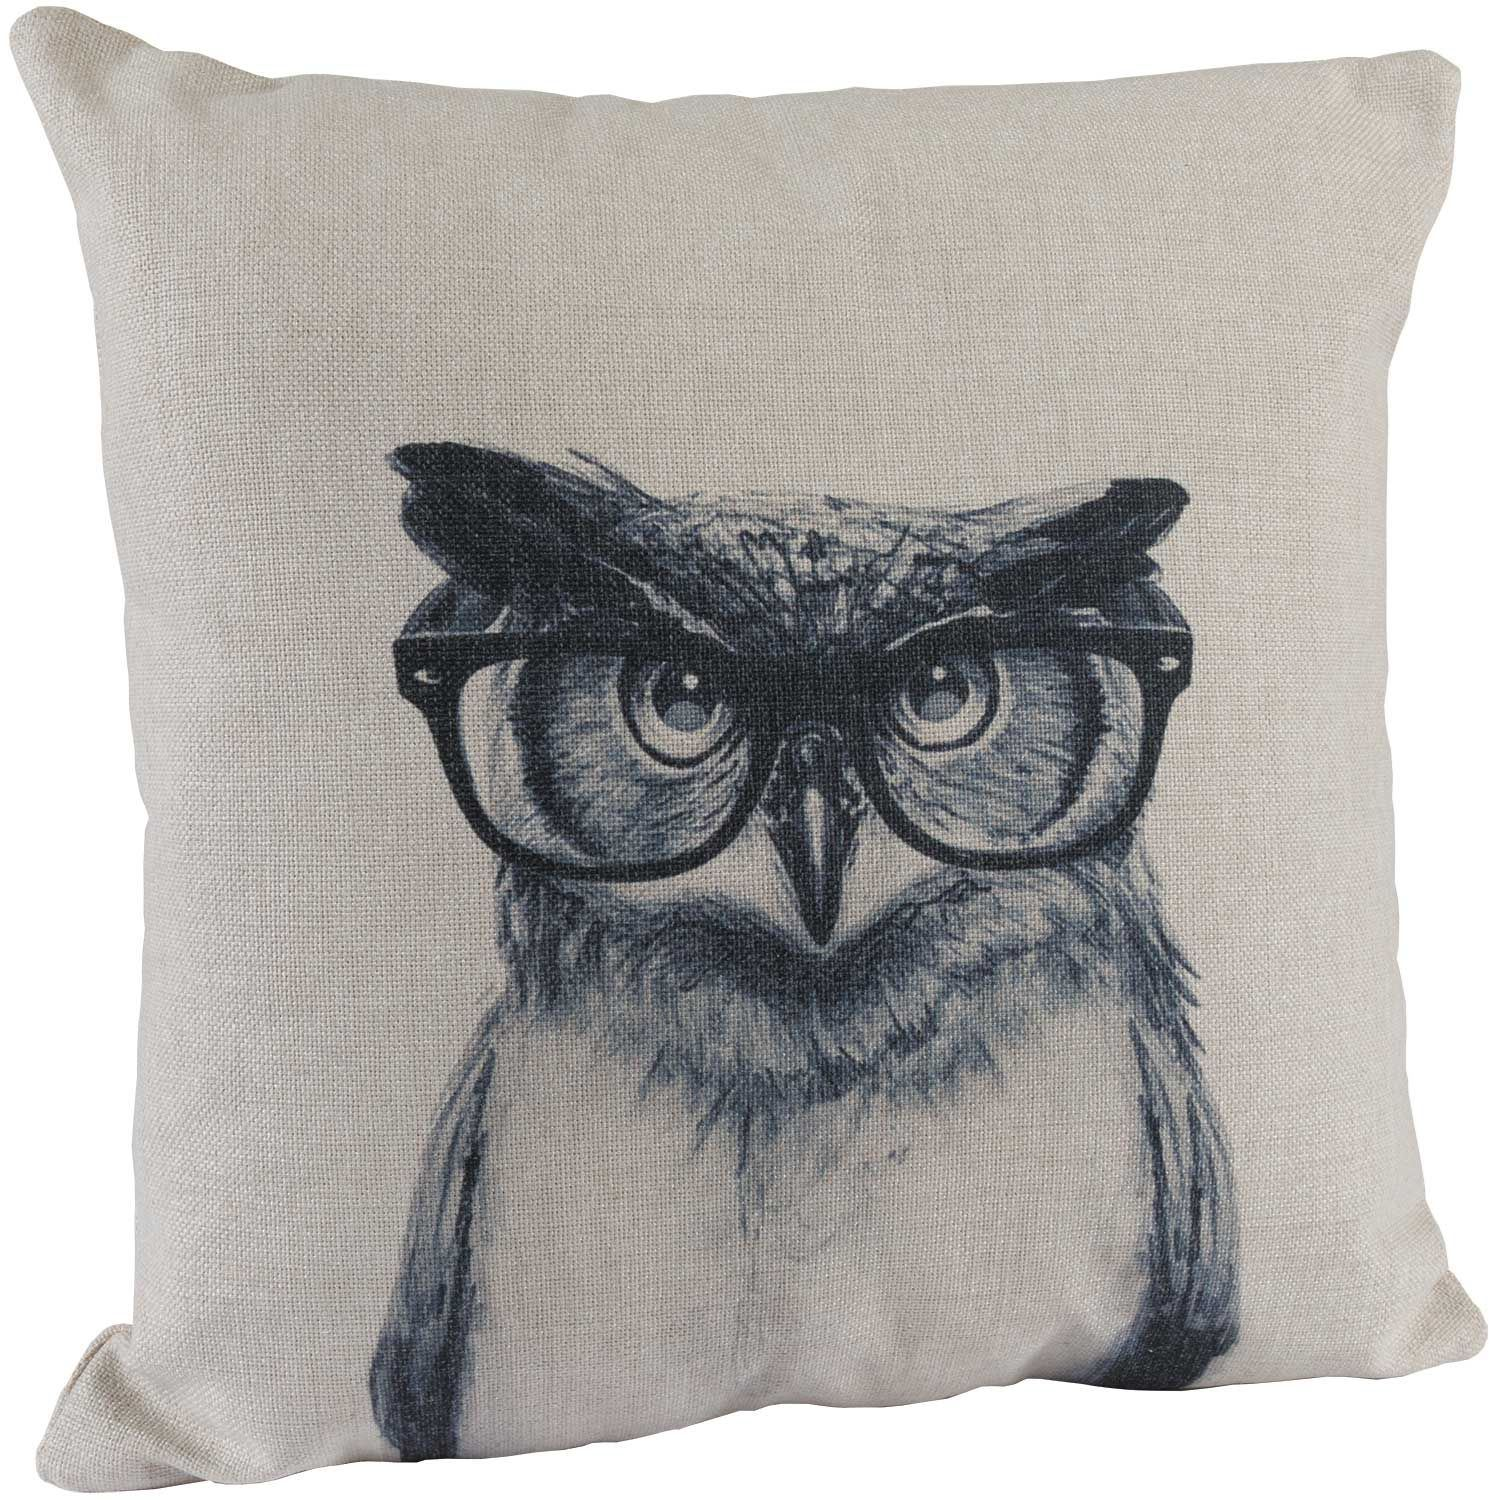 Picture of Studious Owl 18x18 Decorative Pillow